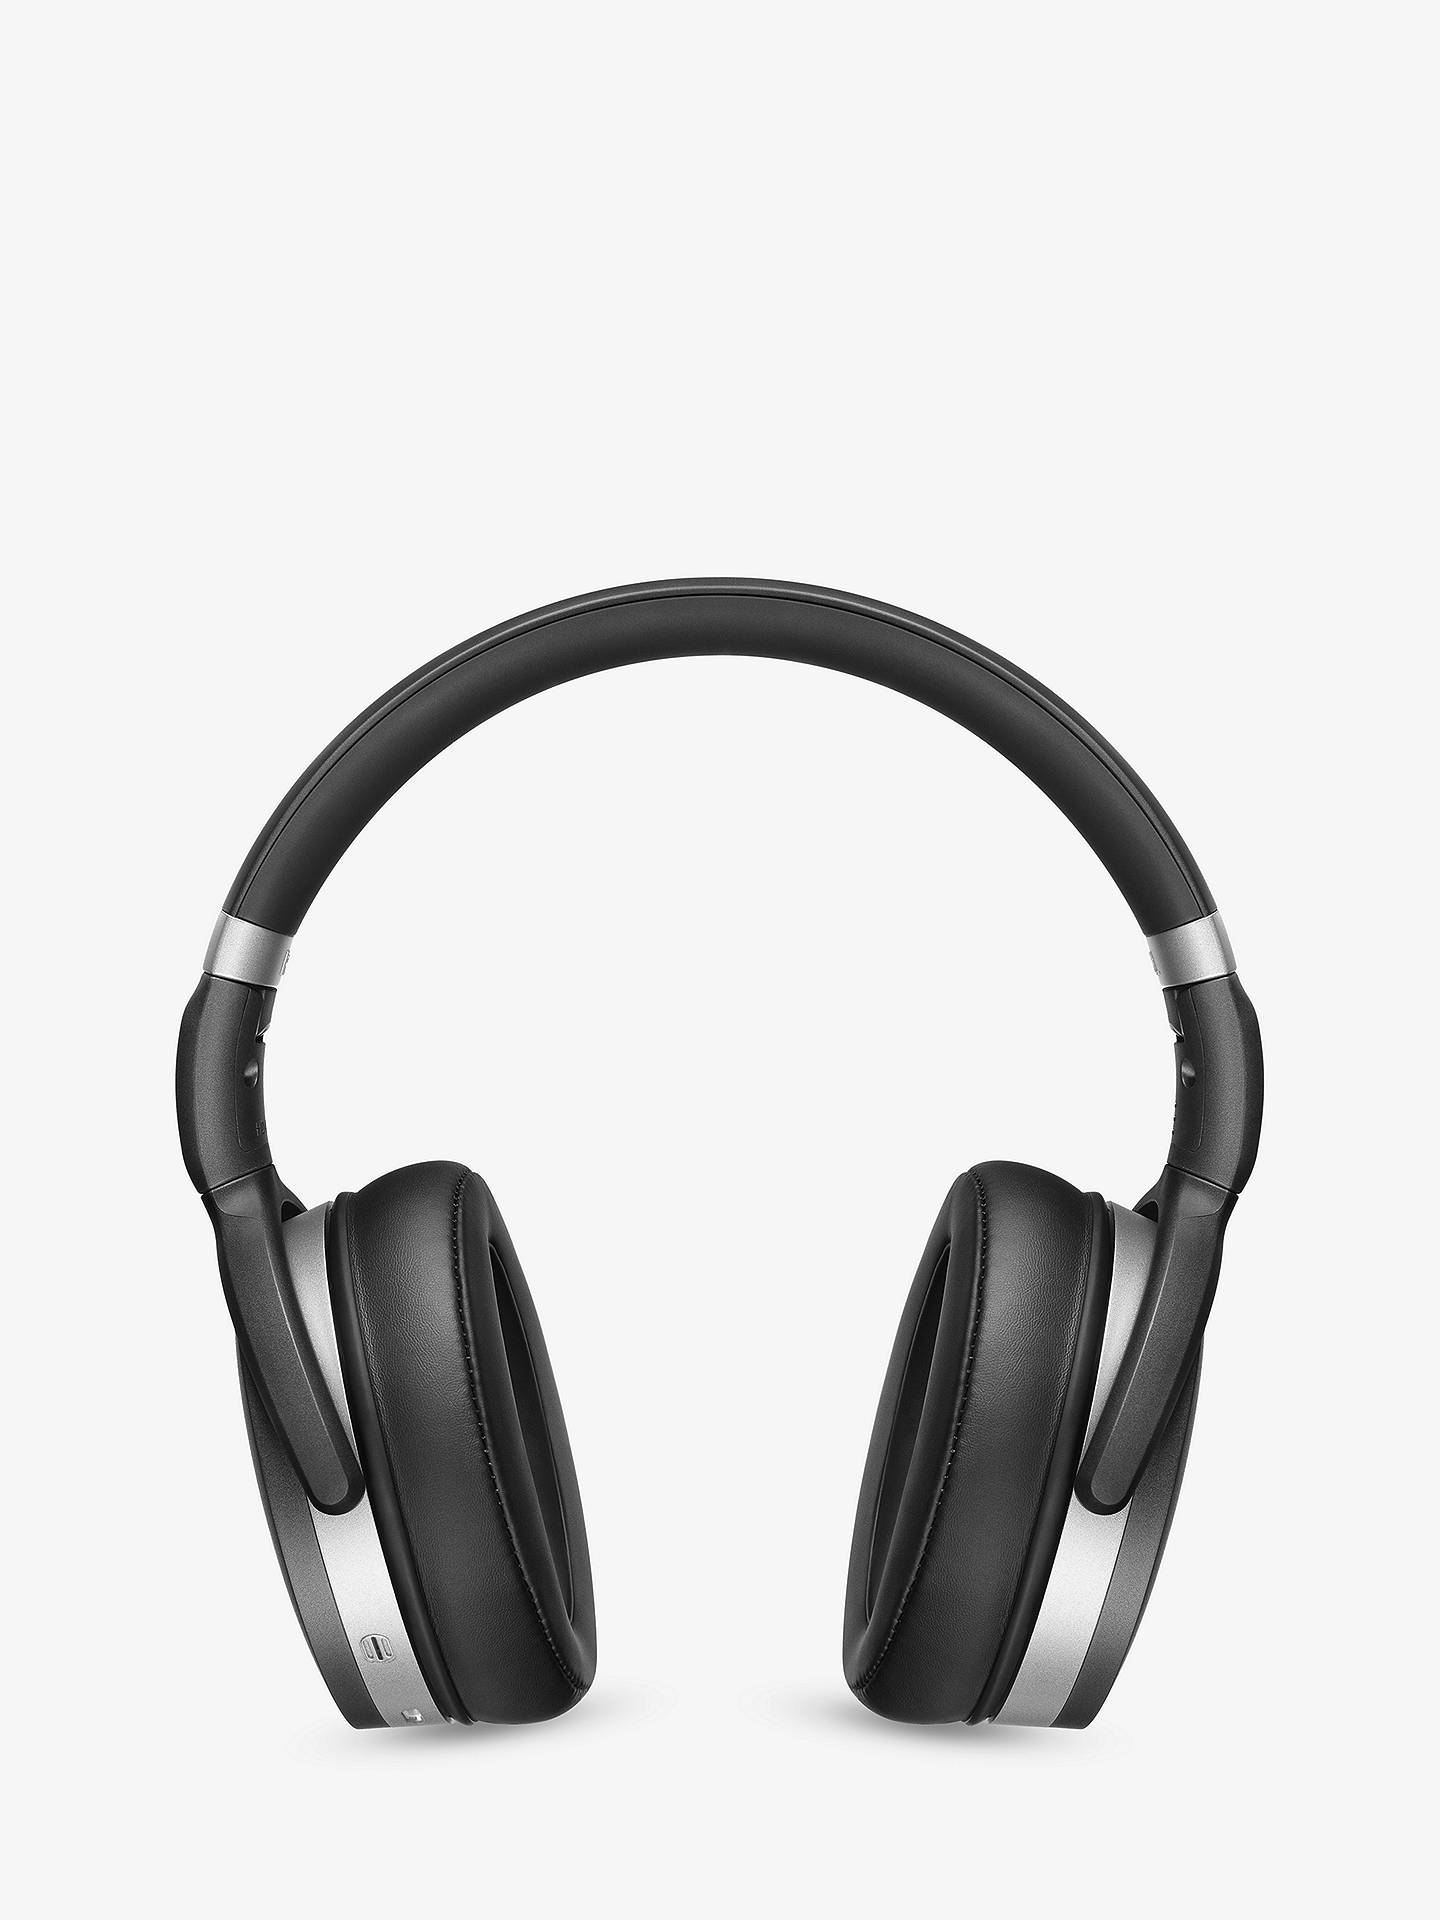 BuySennheiser HD 4.50 Noise Cancelling Bluetooth/NFC Wireless Over-Ear Headphones with Inline Microphone & Remote, Black Online at johnlewis.com